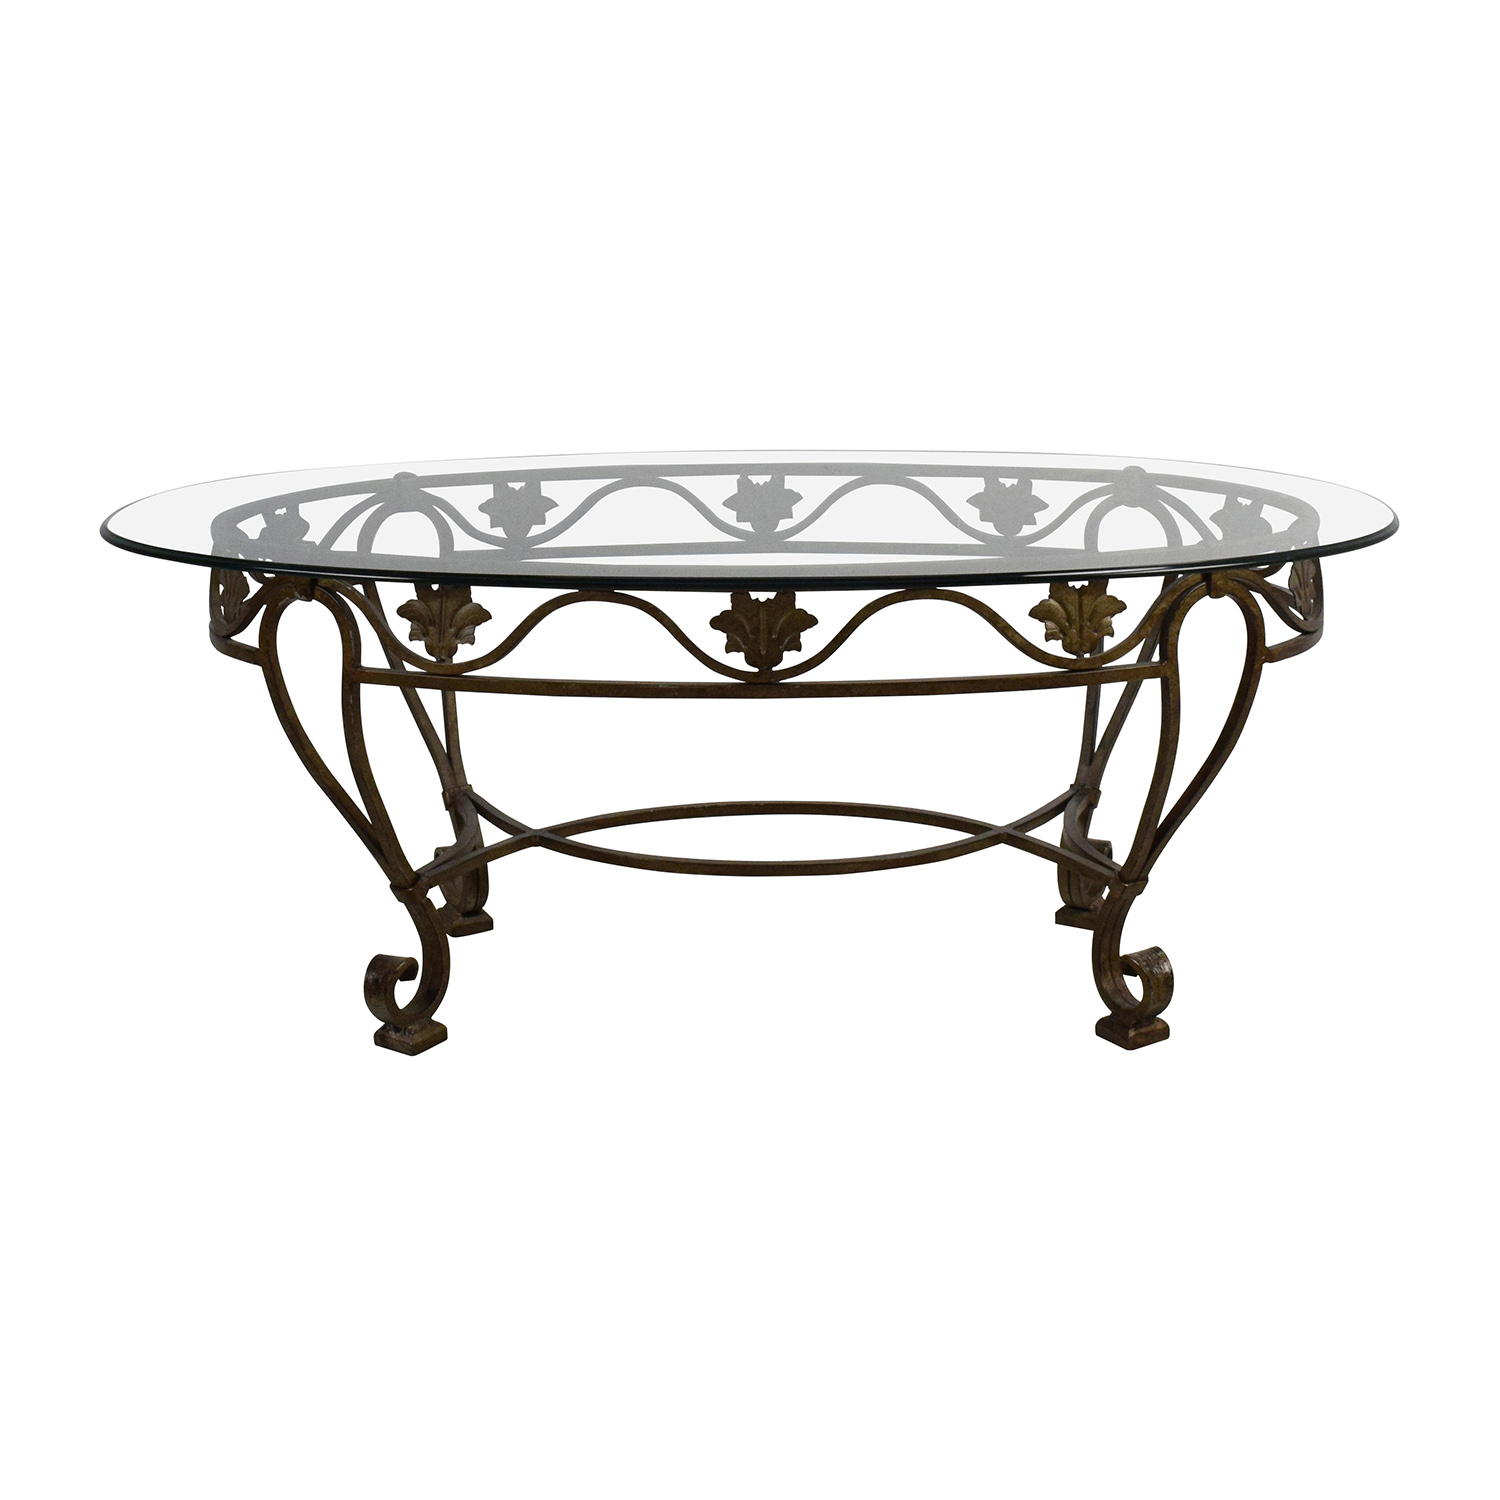 Antique coffee tables with glass top best home design 2018 Used glass coffee table